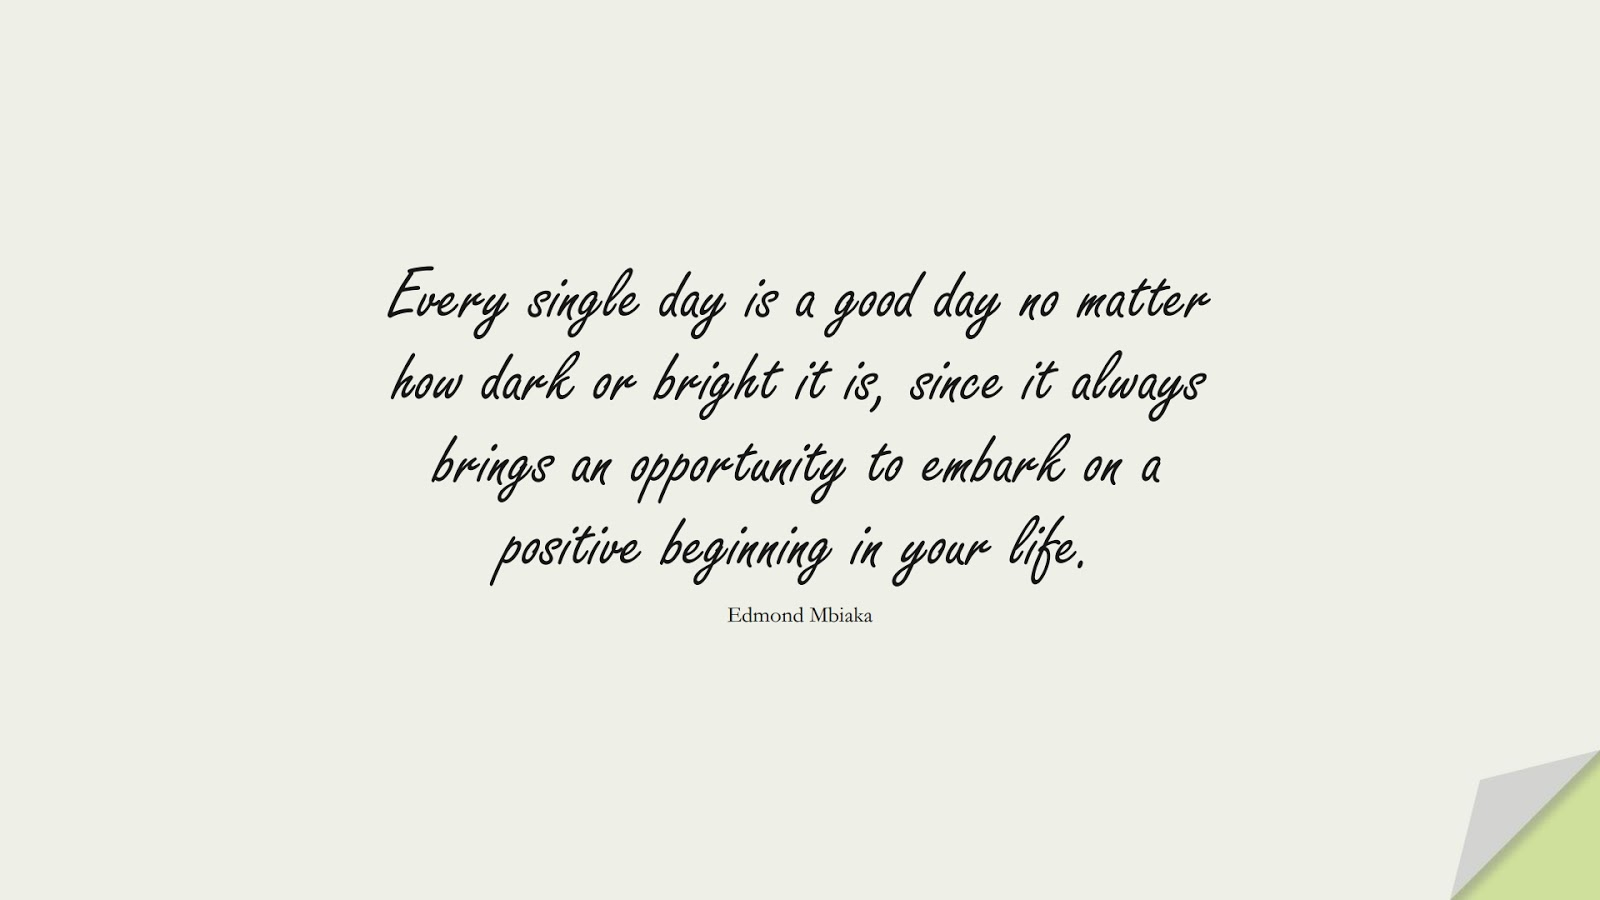 Every single day is a good day no matter how dark or bright it is, since it always brings an opportunity to embark on a positive beginning in your life. (Edmond Mbiaka);  #LifeQuotes